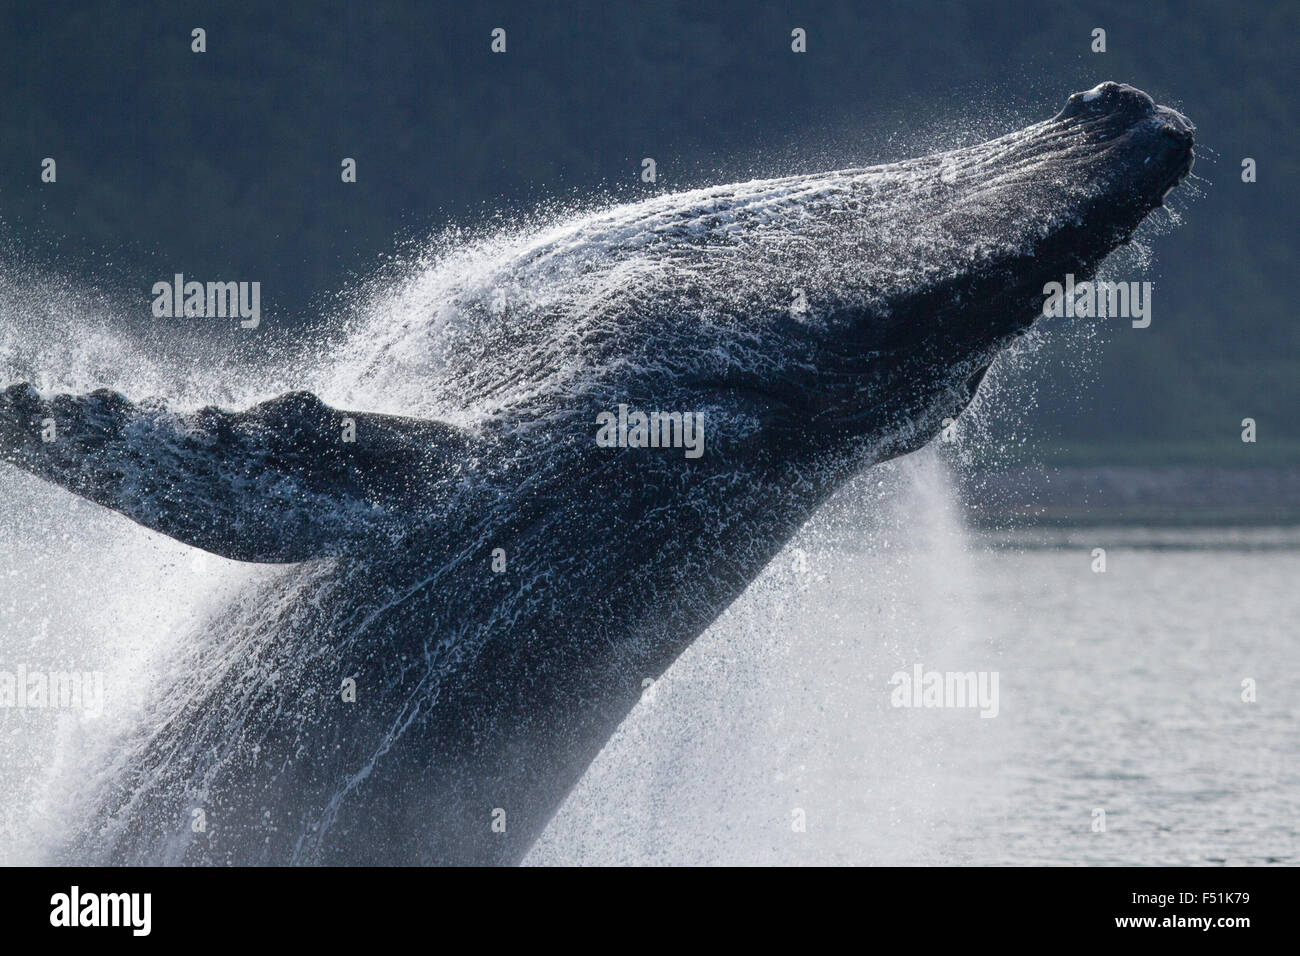 Humpback Whale breaching in Alaskan waters Stock Photo